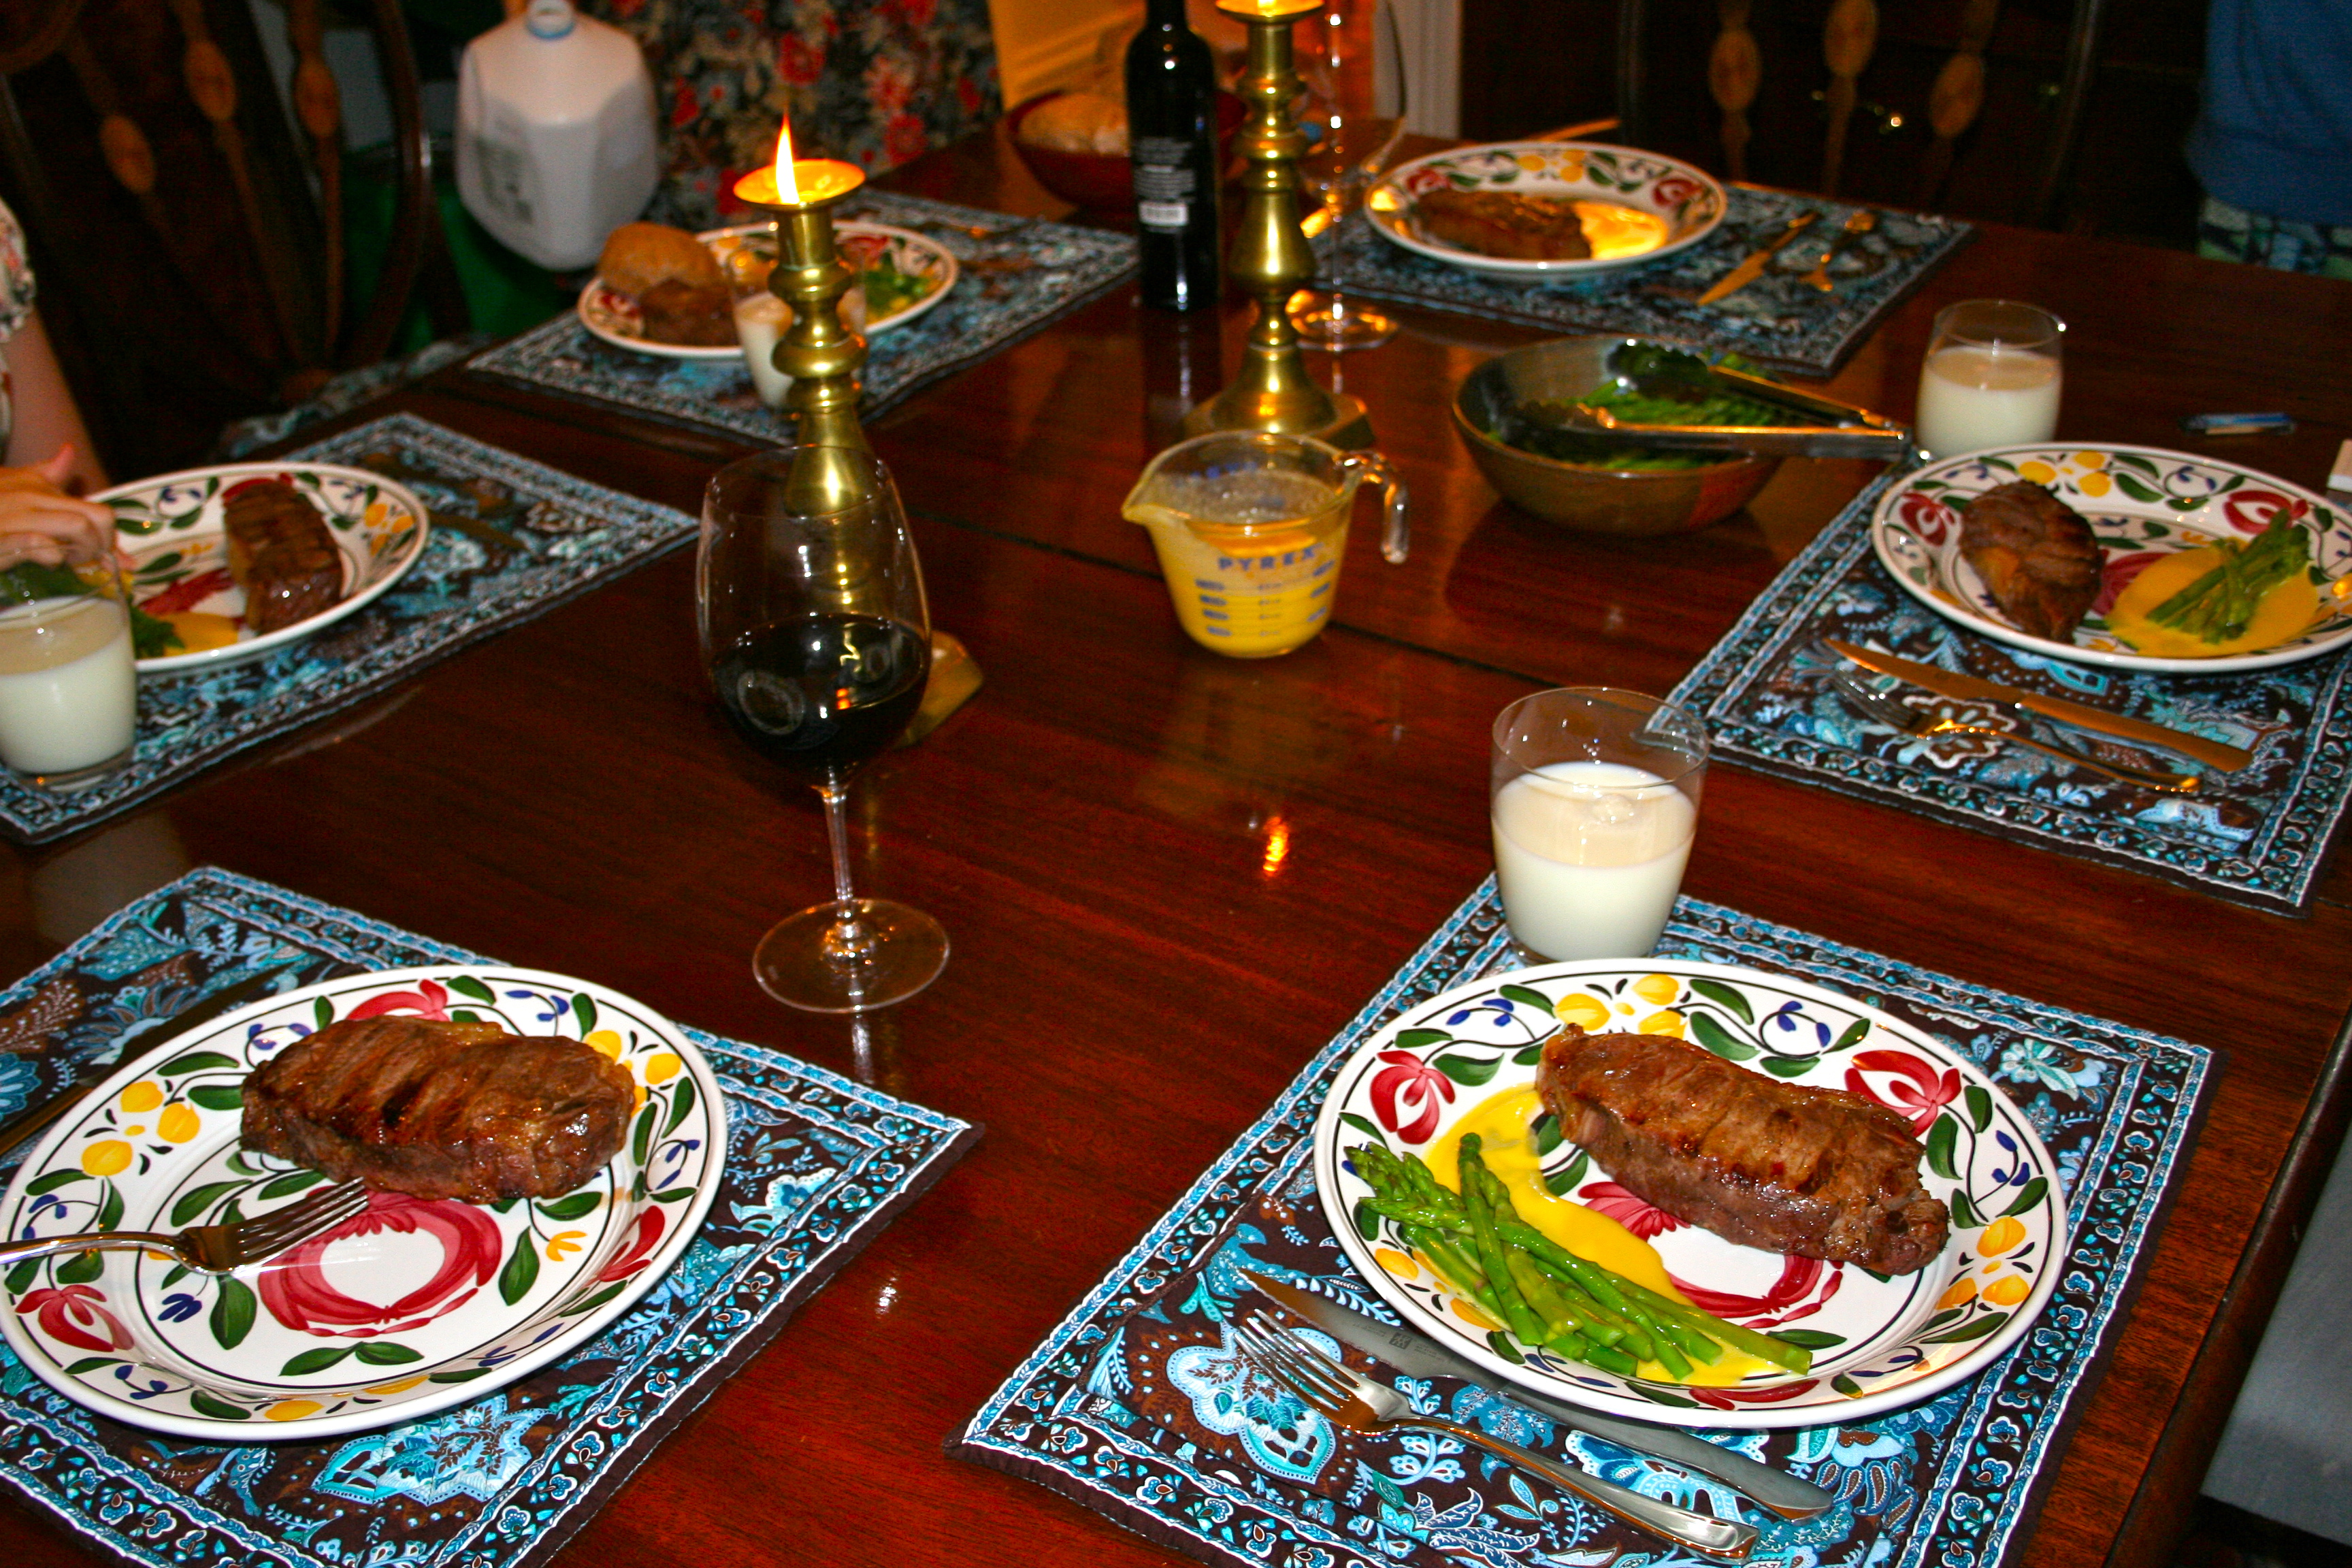 Family dinner table with food - I